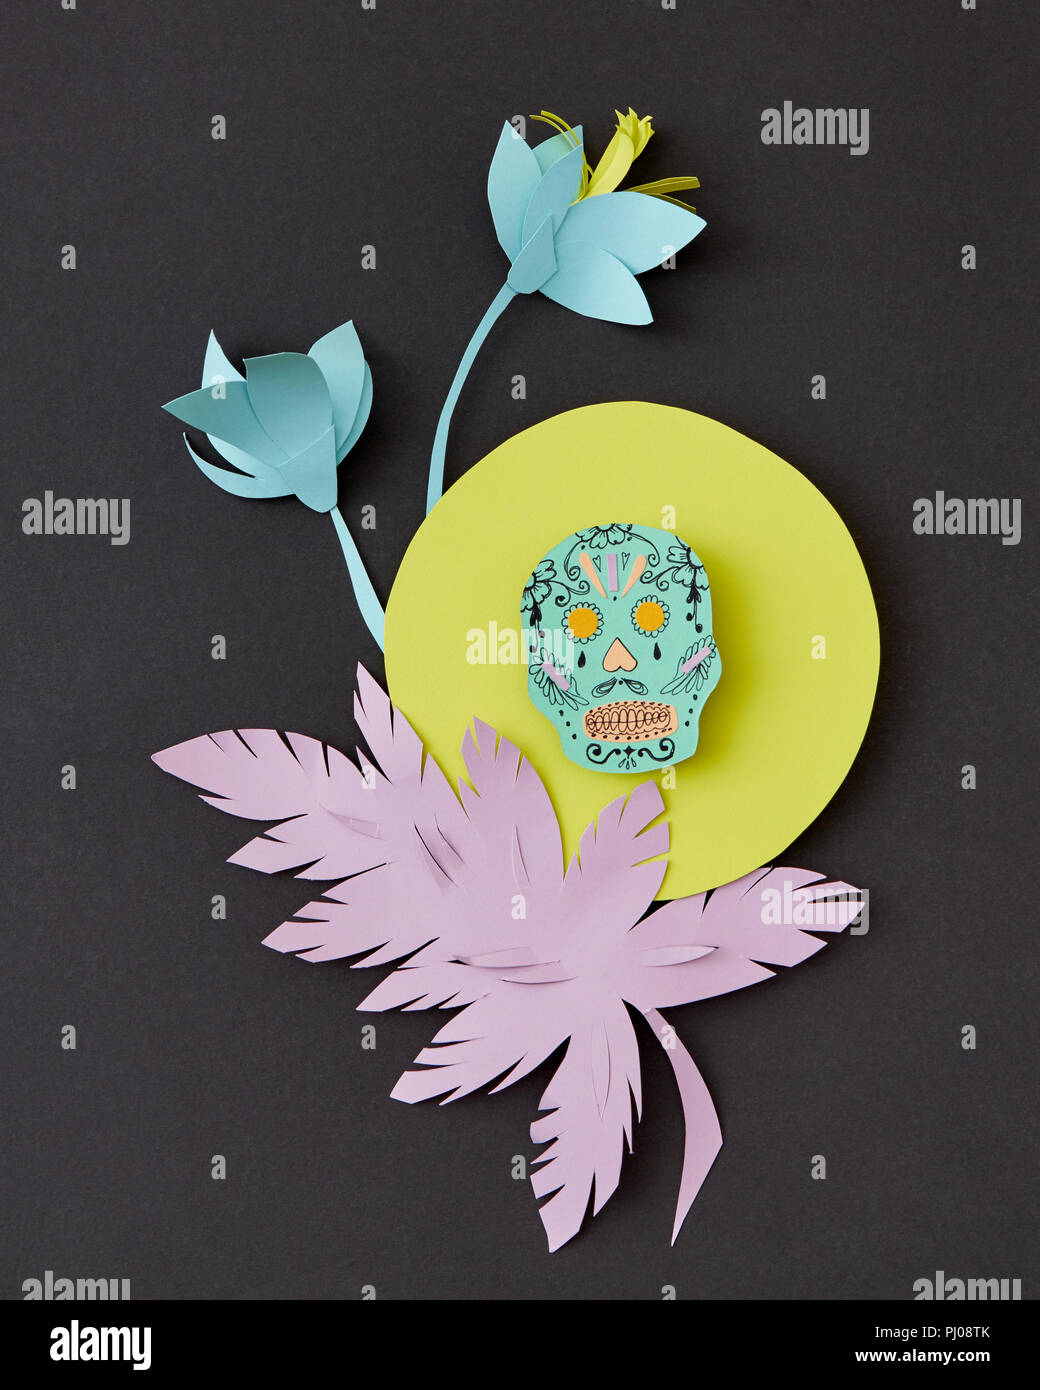 Greeting Card With Calaveras Skull Decorated Paper Flowers